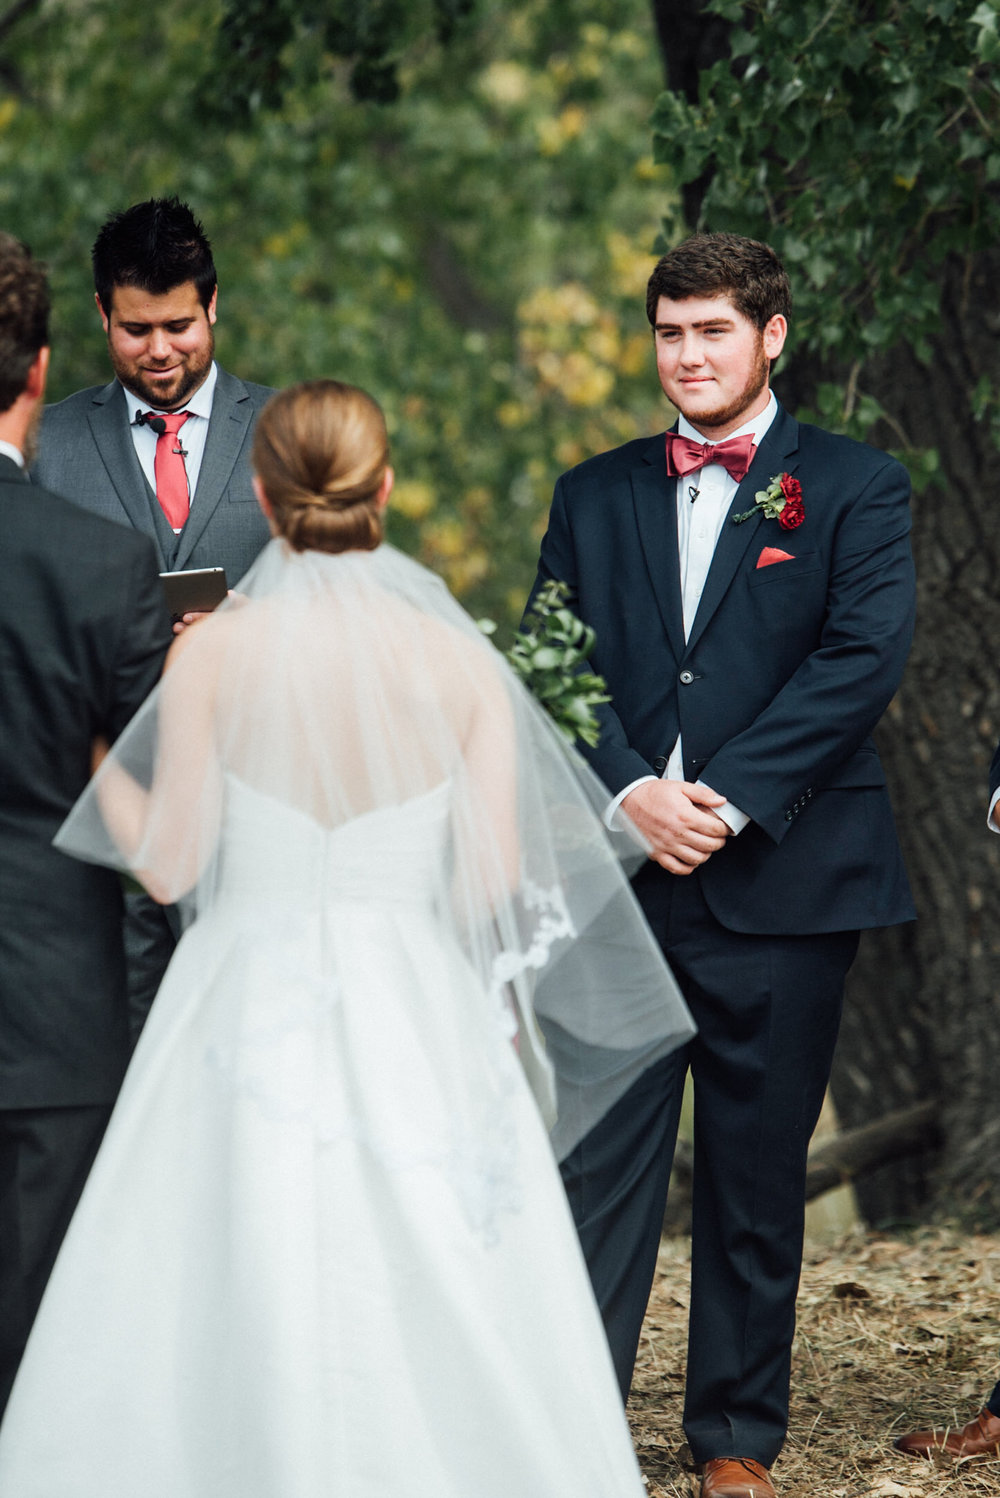 Ceremony at a beautiful Colorado wedding photographer